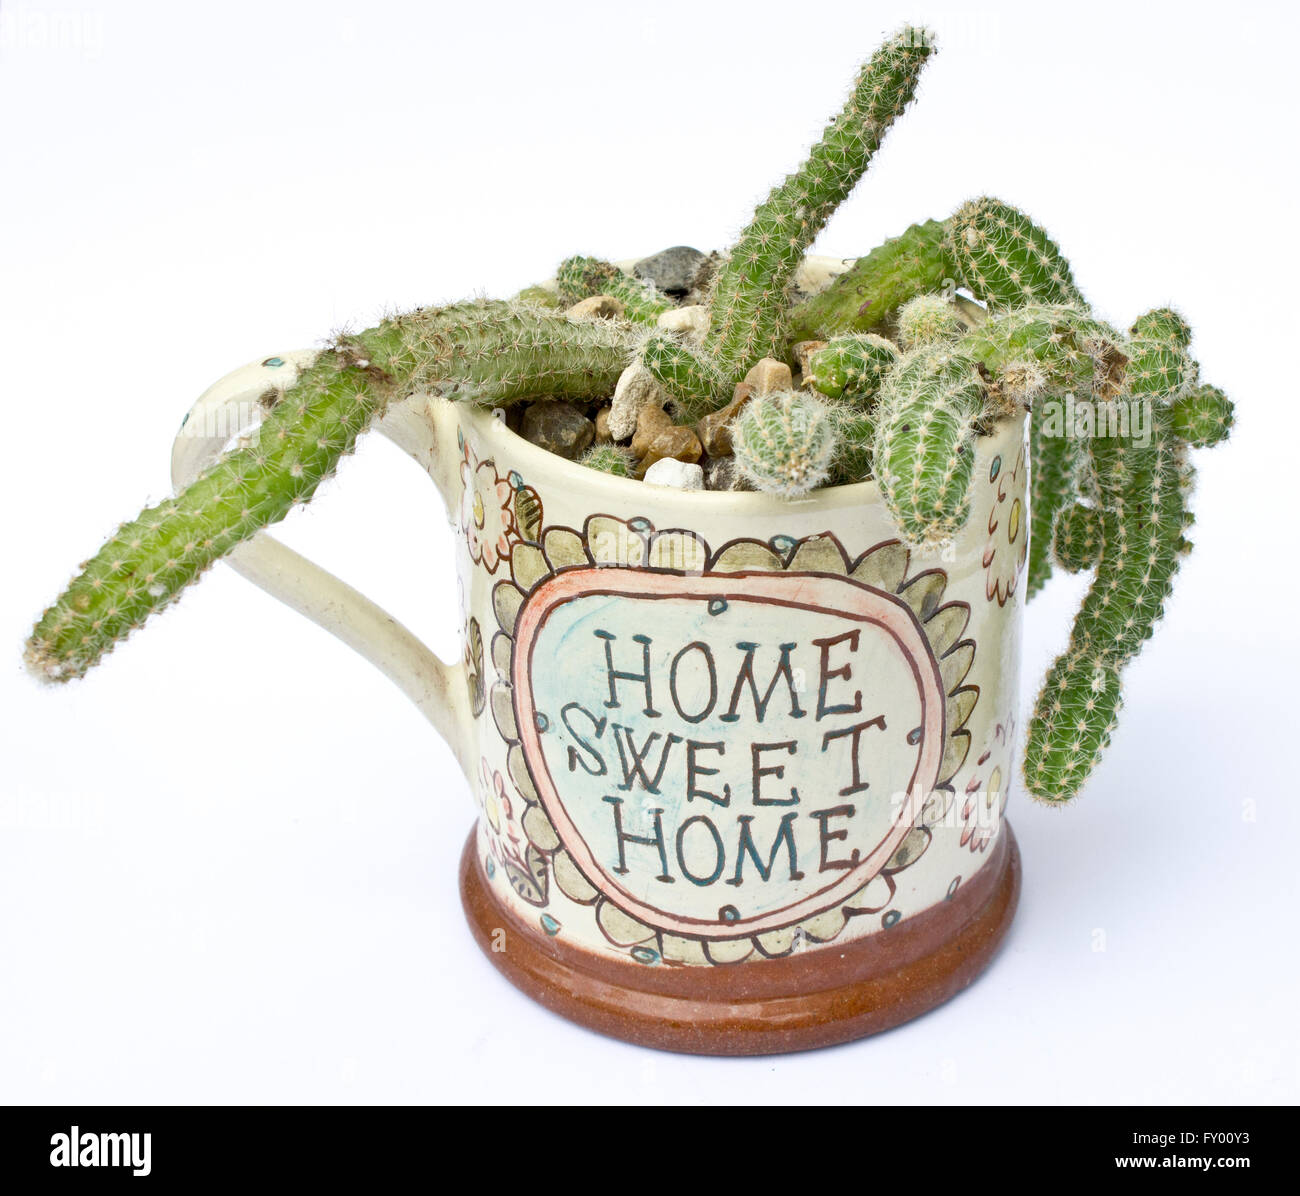 Cactus in Home Sweet Home Cup - Stock Image